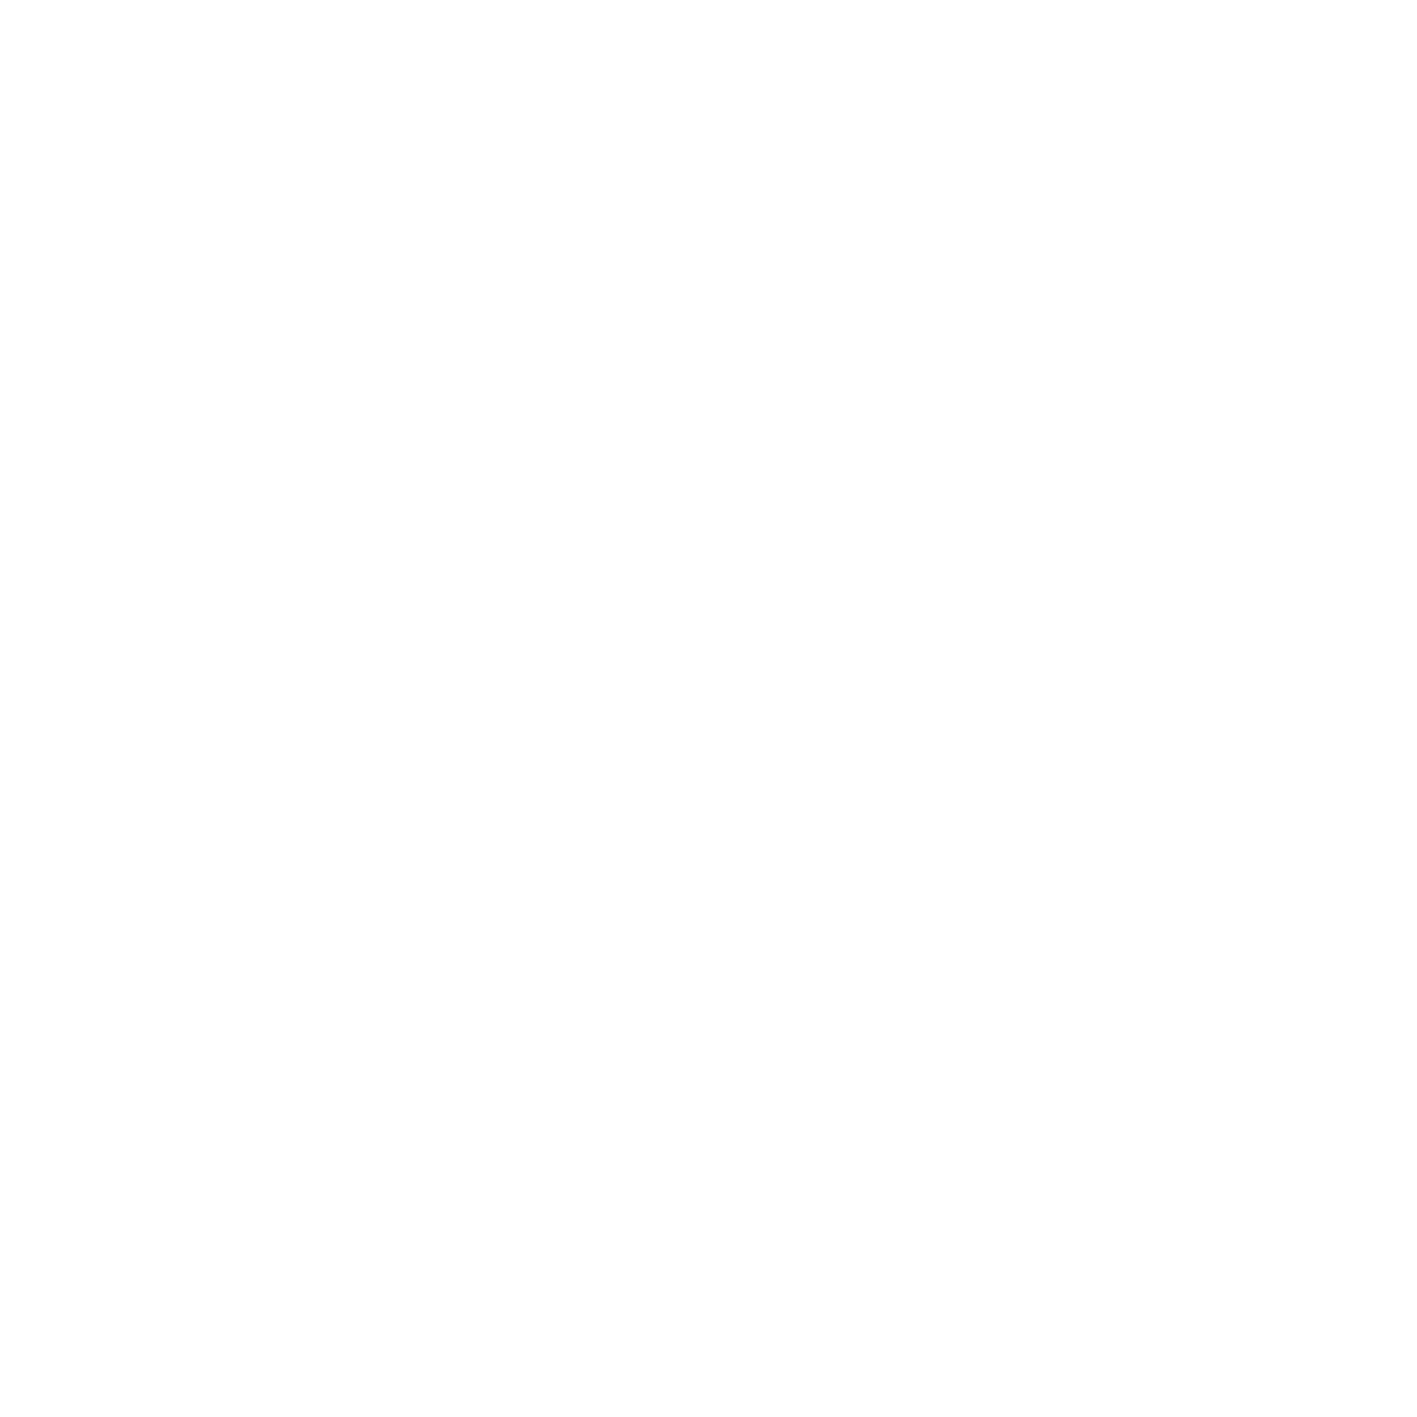 Care about weims